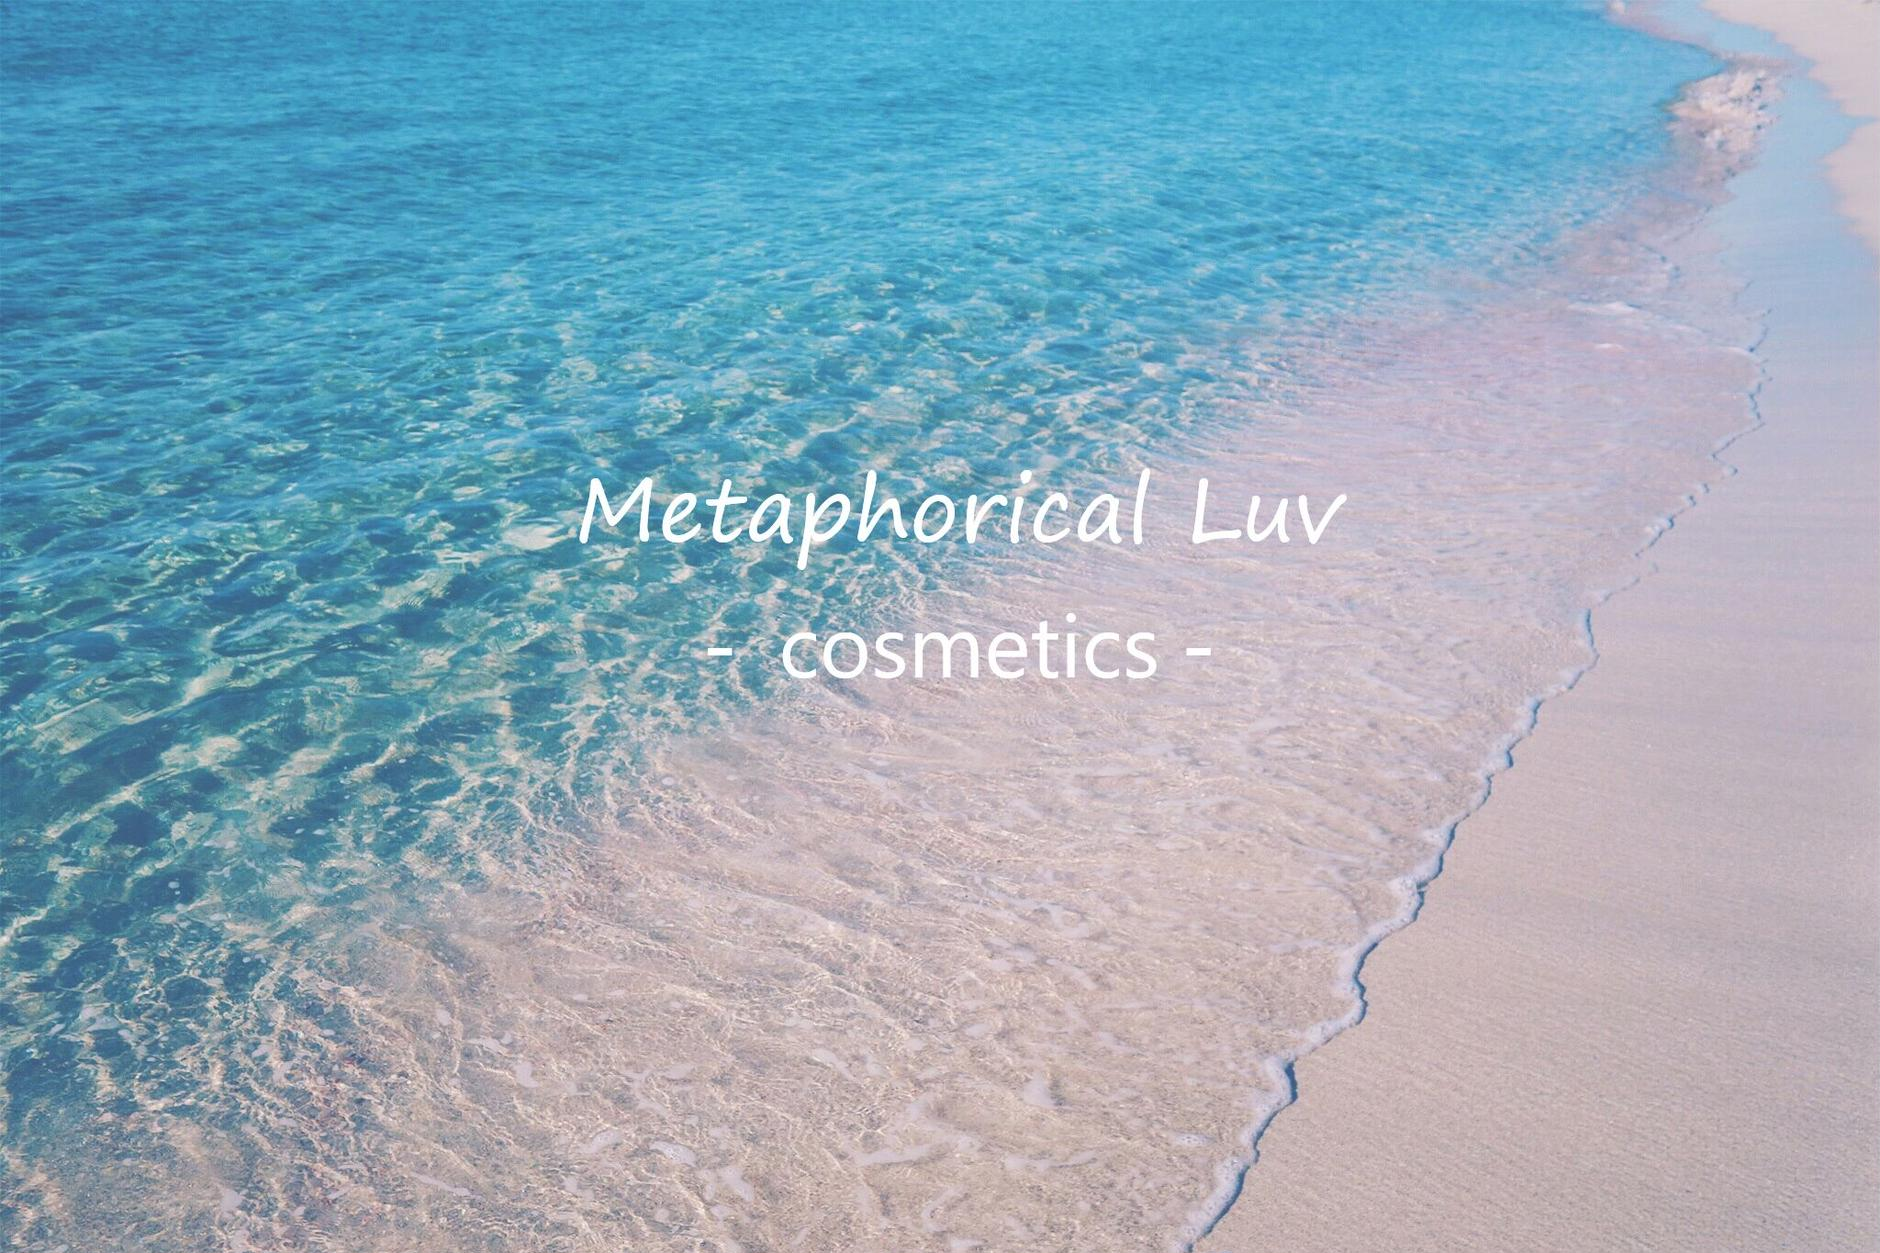 Metaphorical Luv STORE